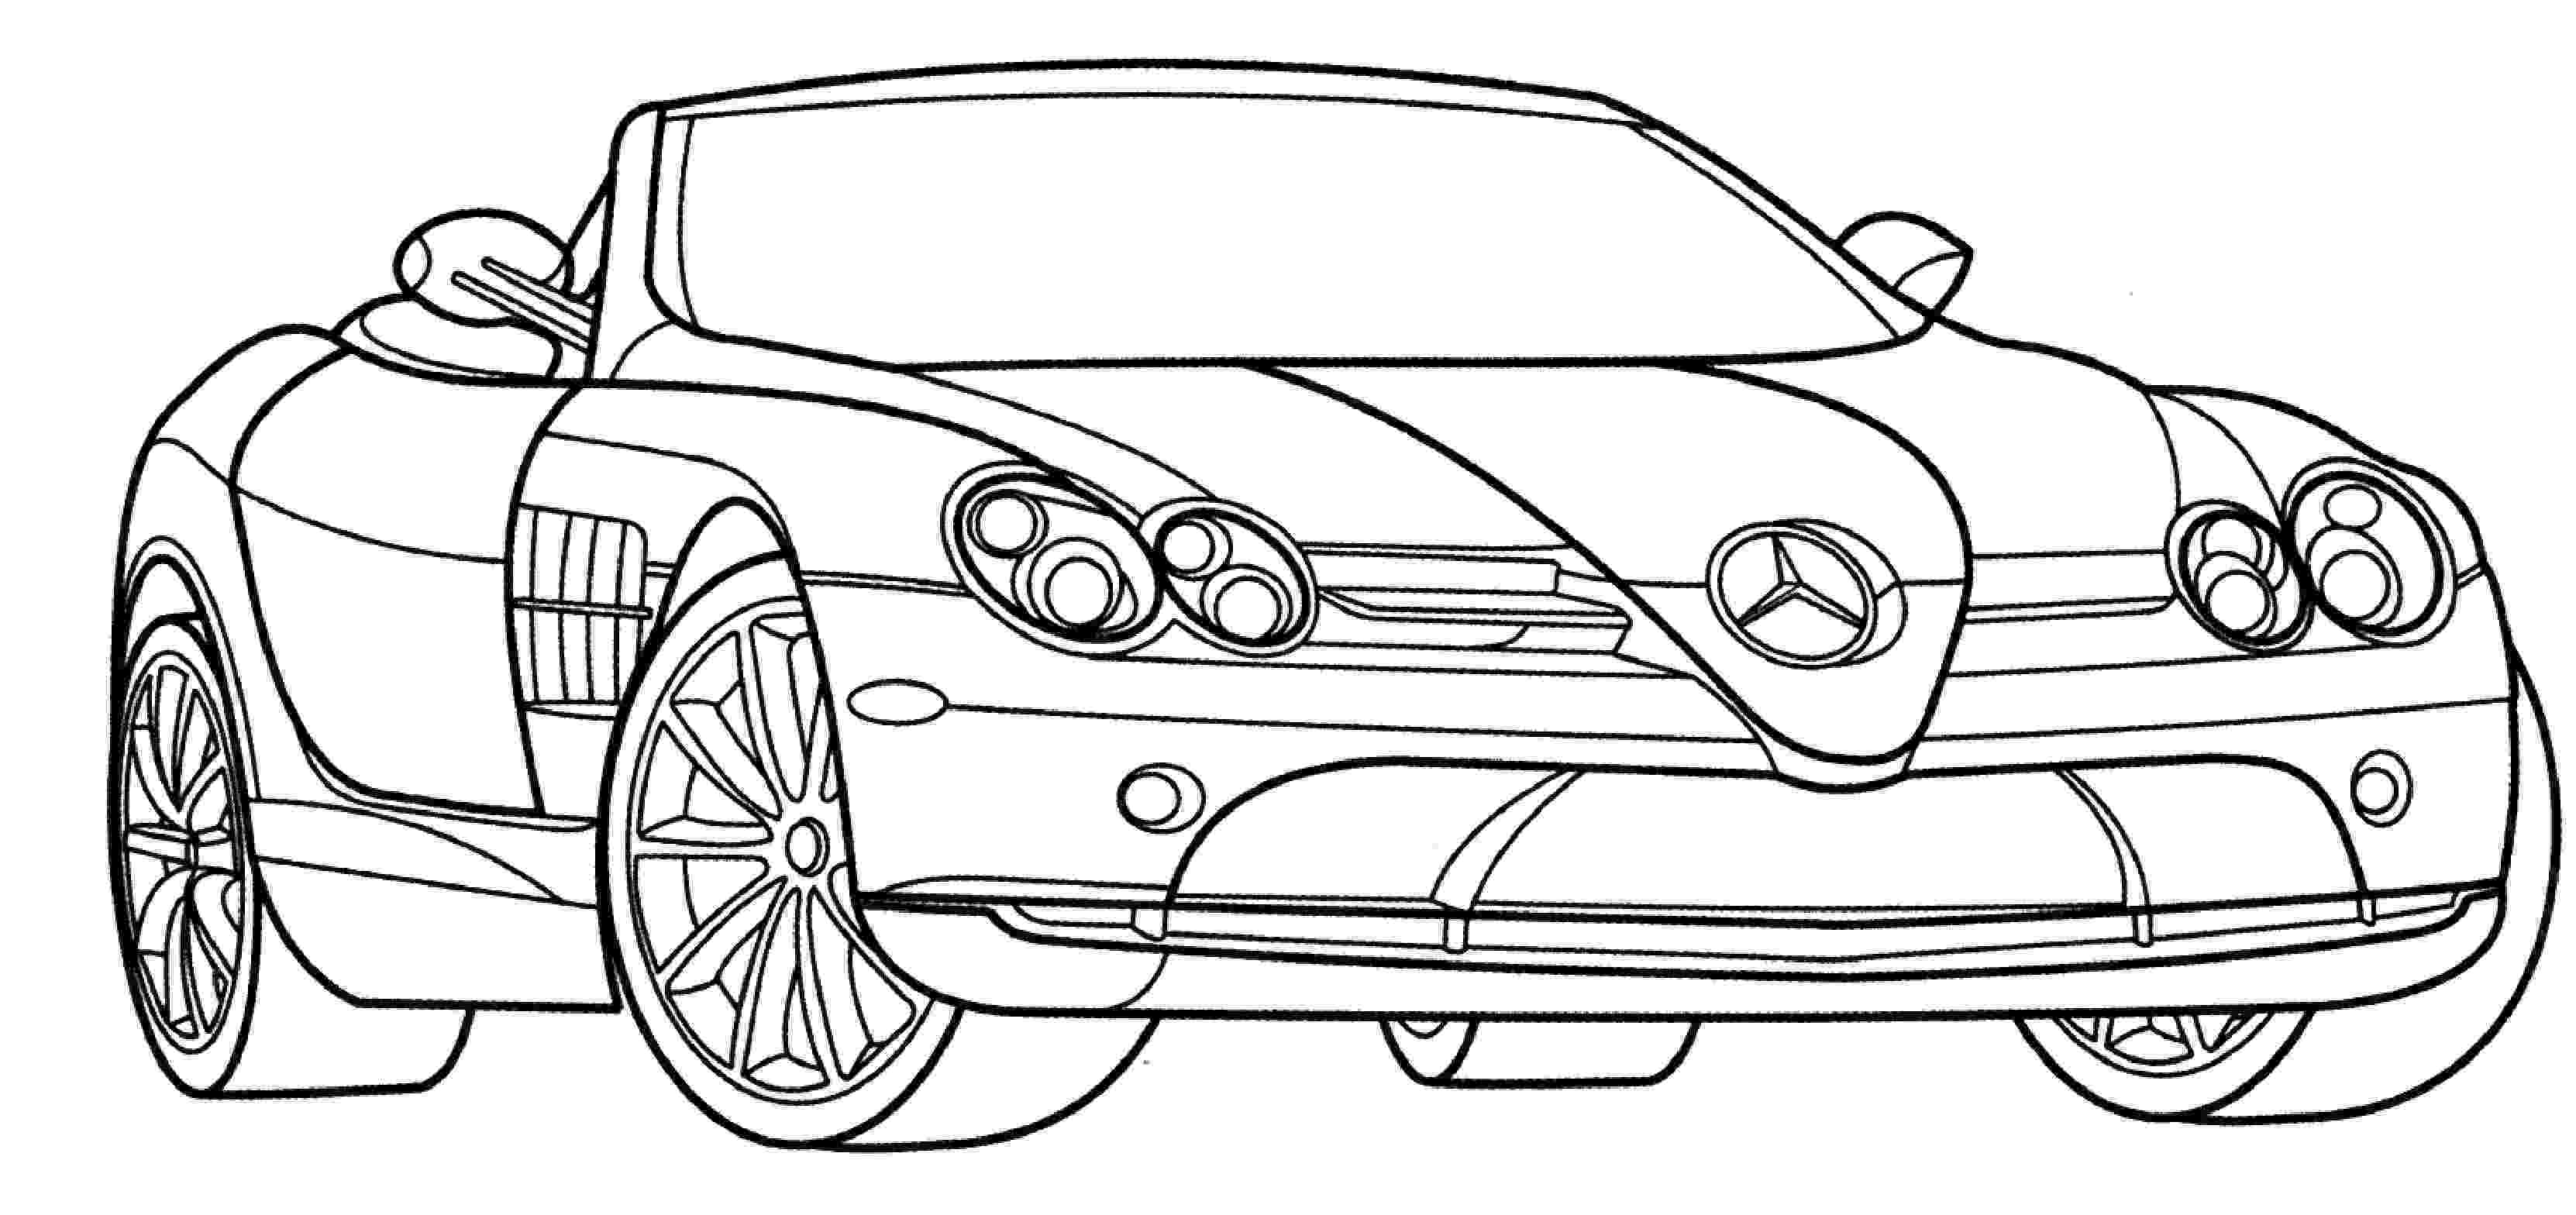 printable coloring pages sports cars coloring pages sports cars to print free coloring sheets pages printable sports cars coloring